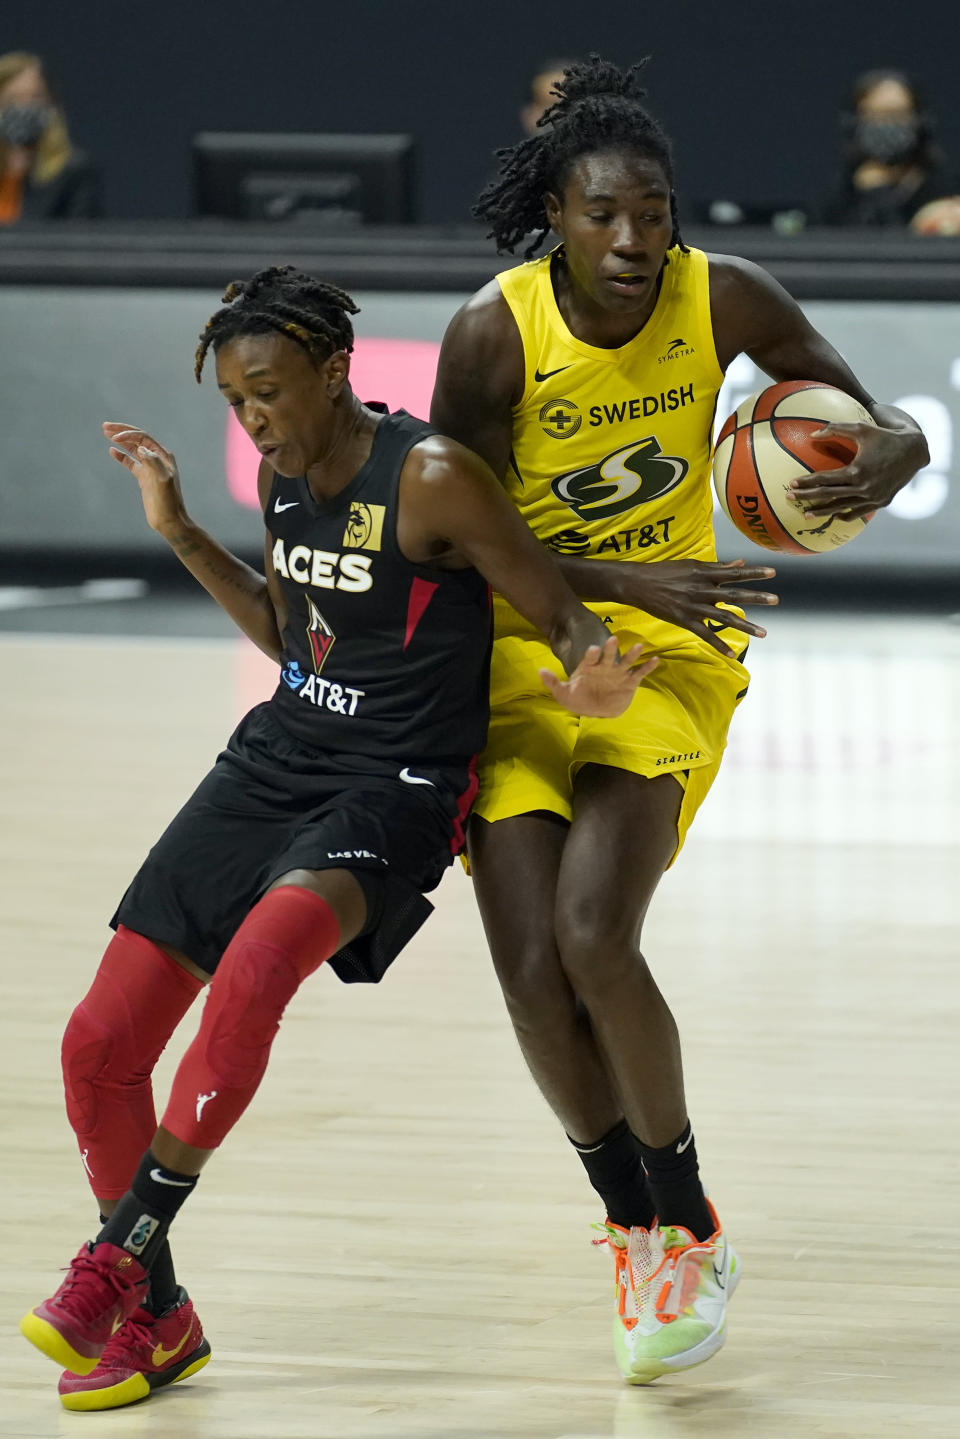 Seattle Storm forward Natasha Howard (6) and Las Vegas Aces guard Danielle Robinson (3) collide chaseing a loose ball during the first half of Game 1 of basketball's WNBA Finals Friday, Oct. 2, 2020, in Bradenton, Fla. (AP Photo/Chris O'Meara)